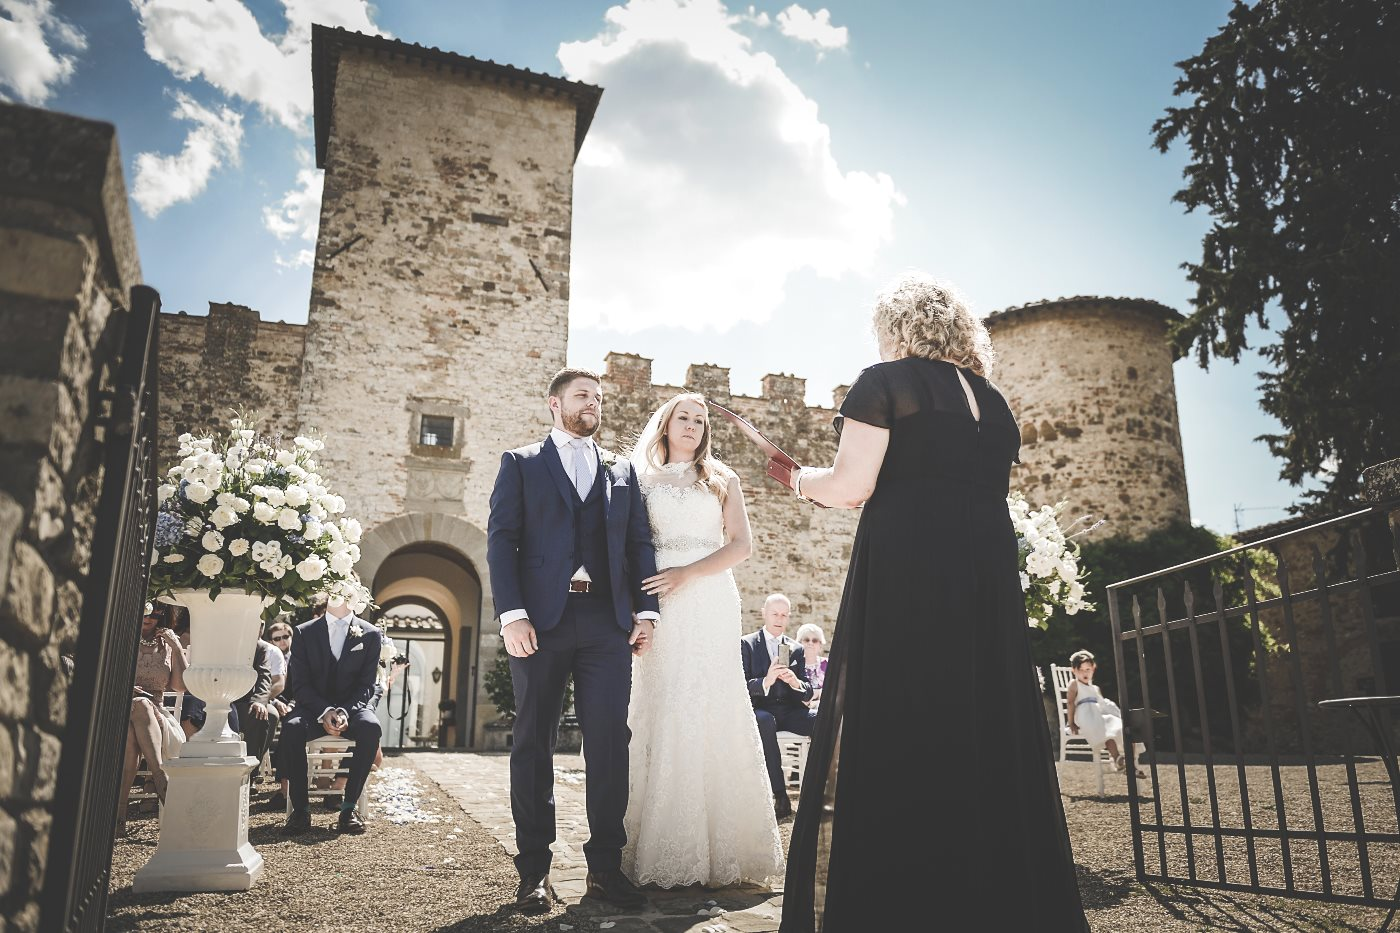 wedding_photos_castello_di_gabbiano_04.jpg